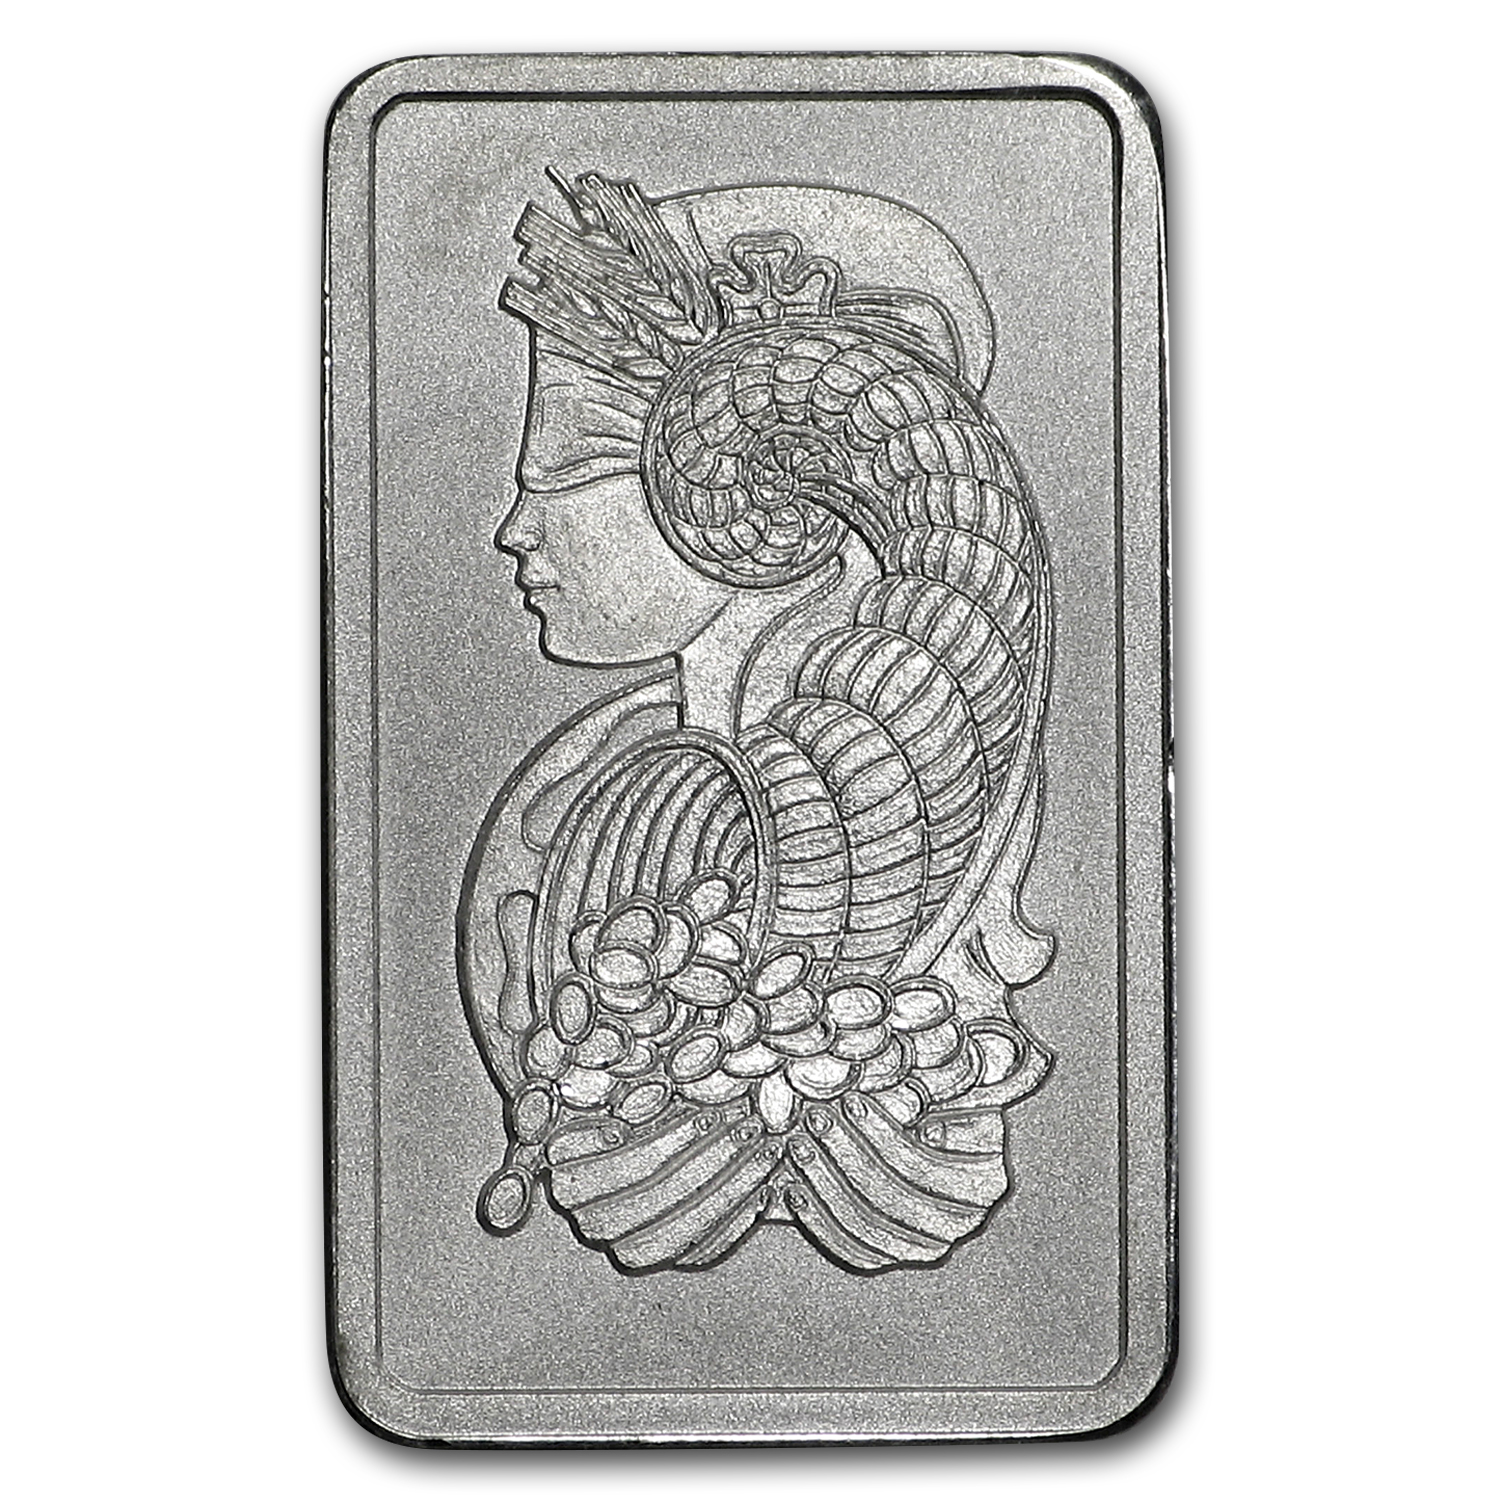 2.5 gram Silver Bar - Secondary Market